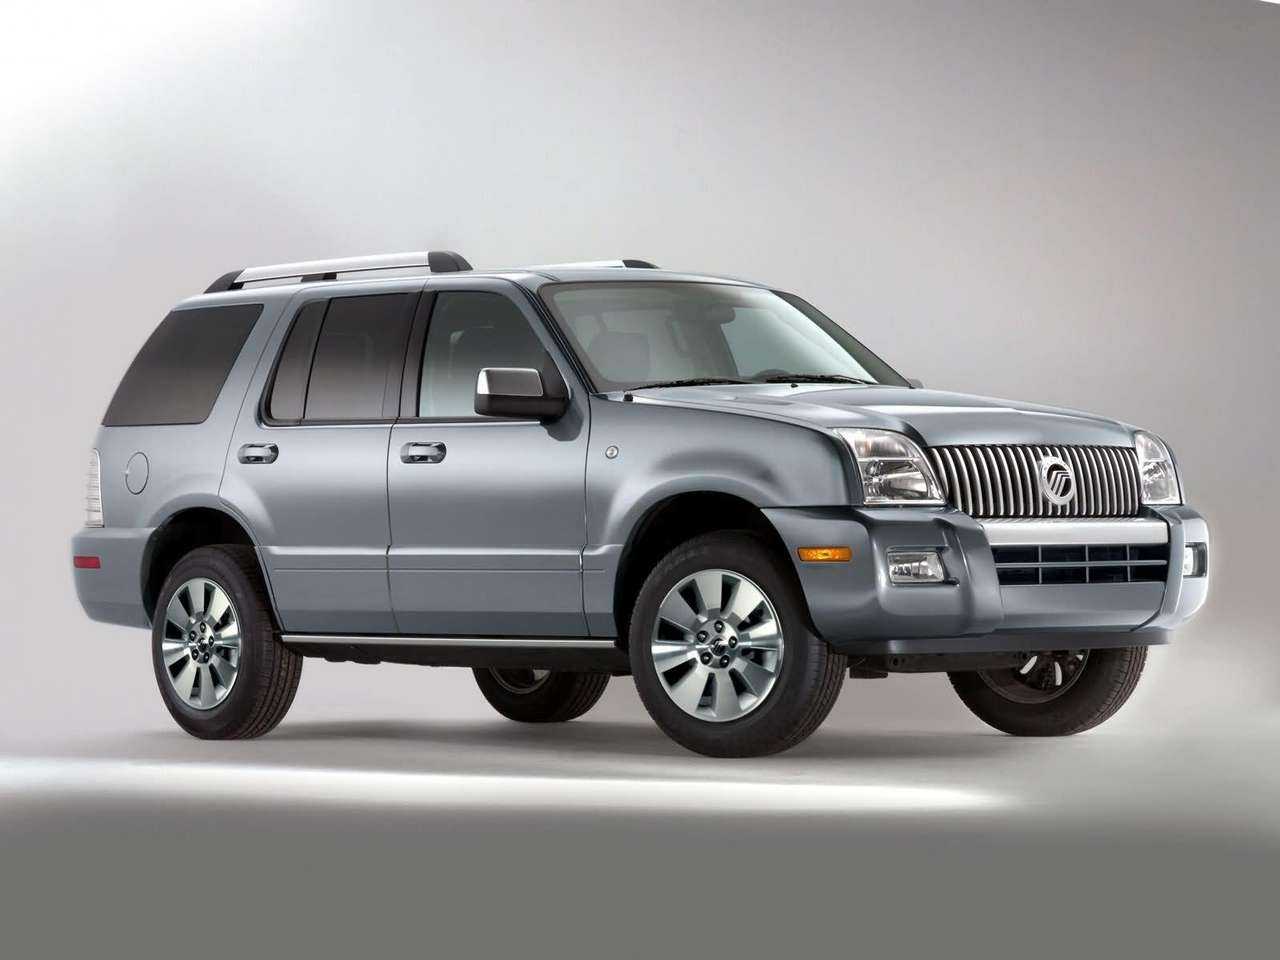 2009 Mercury Mountaineer Premier picture, exterior